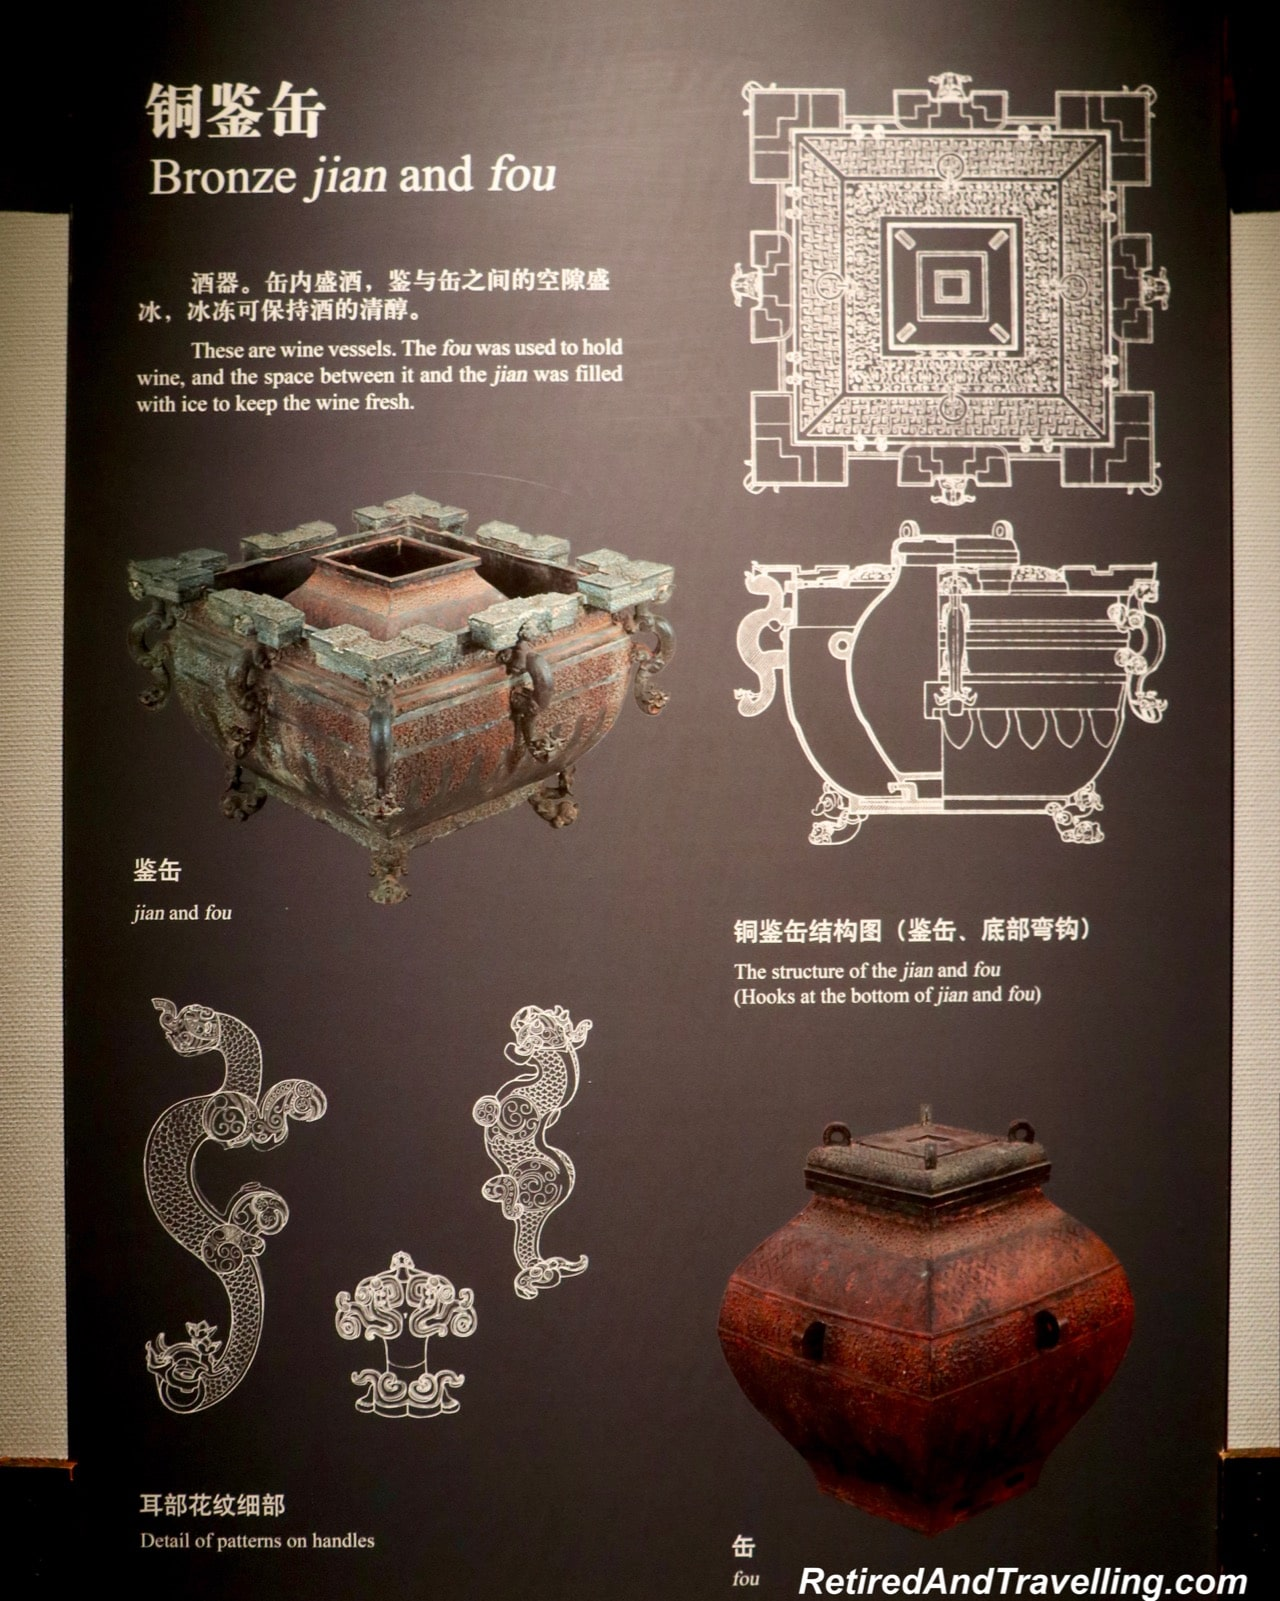 Marquis Yi Bronze - Wuhan Hubei Provincial Museum - Cruise In Wuhan On The Yangtze River.jpg